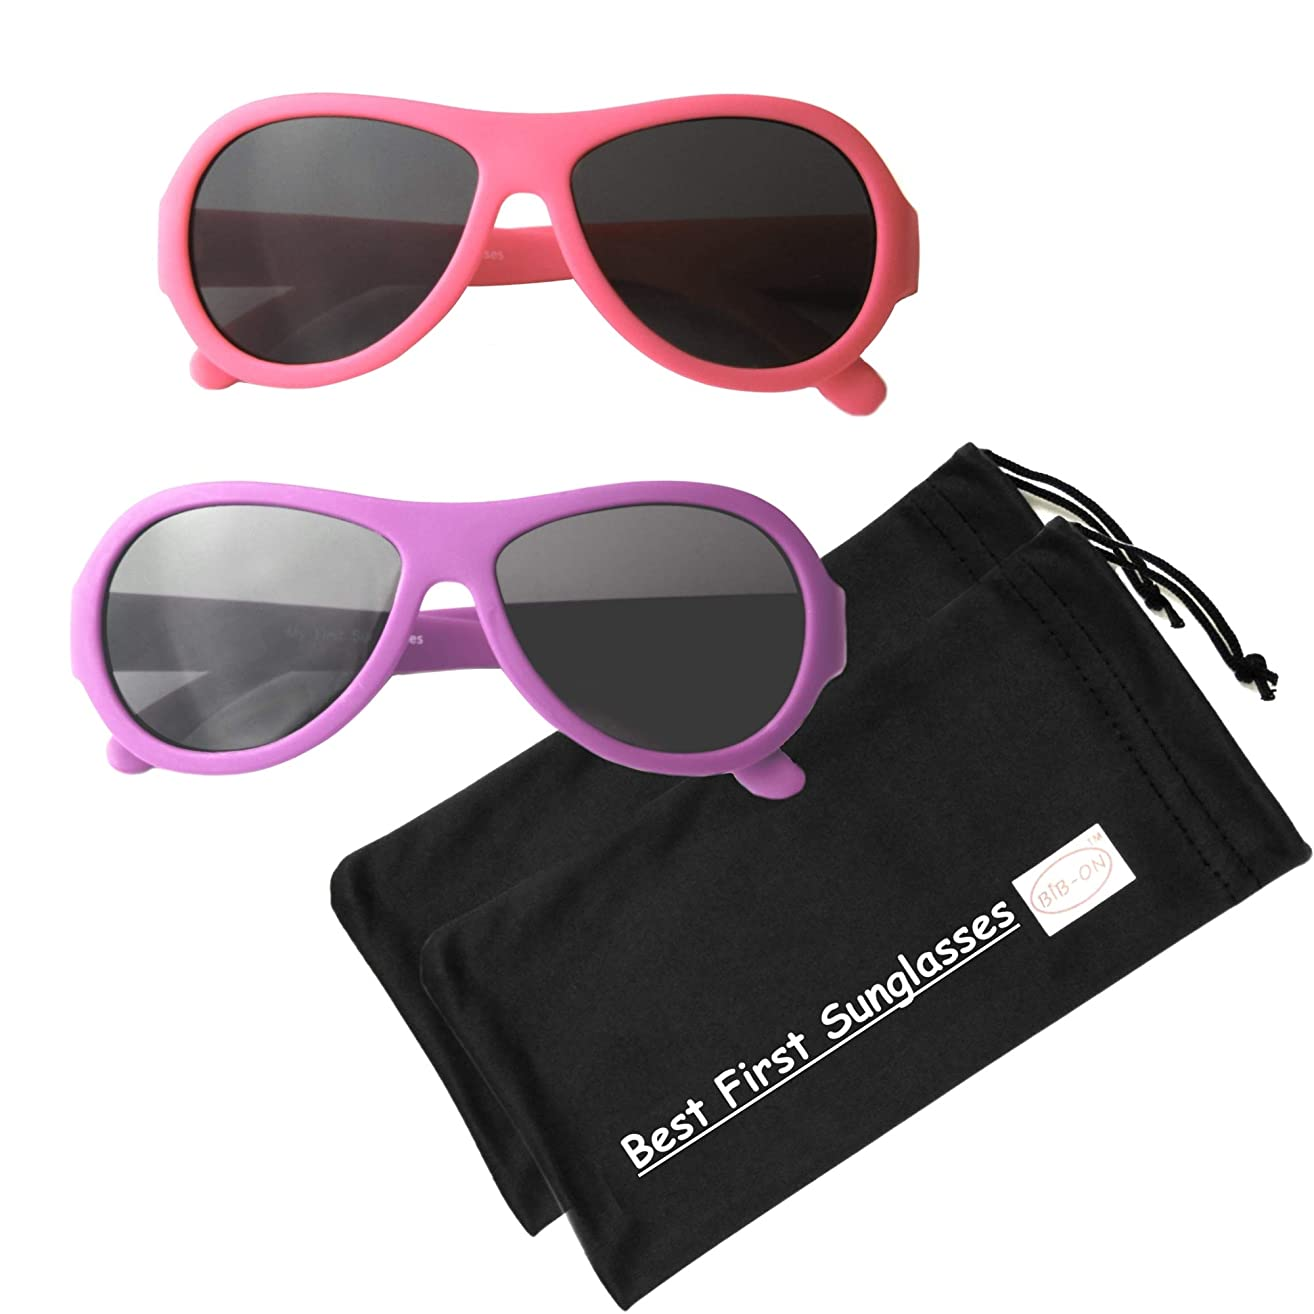 Top Flyers- Best First Sunglasses for Infant, Baby, Toddler, and Kids. 100% UV Protection. Many Colors and Sizes.